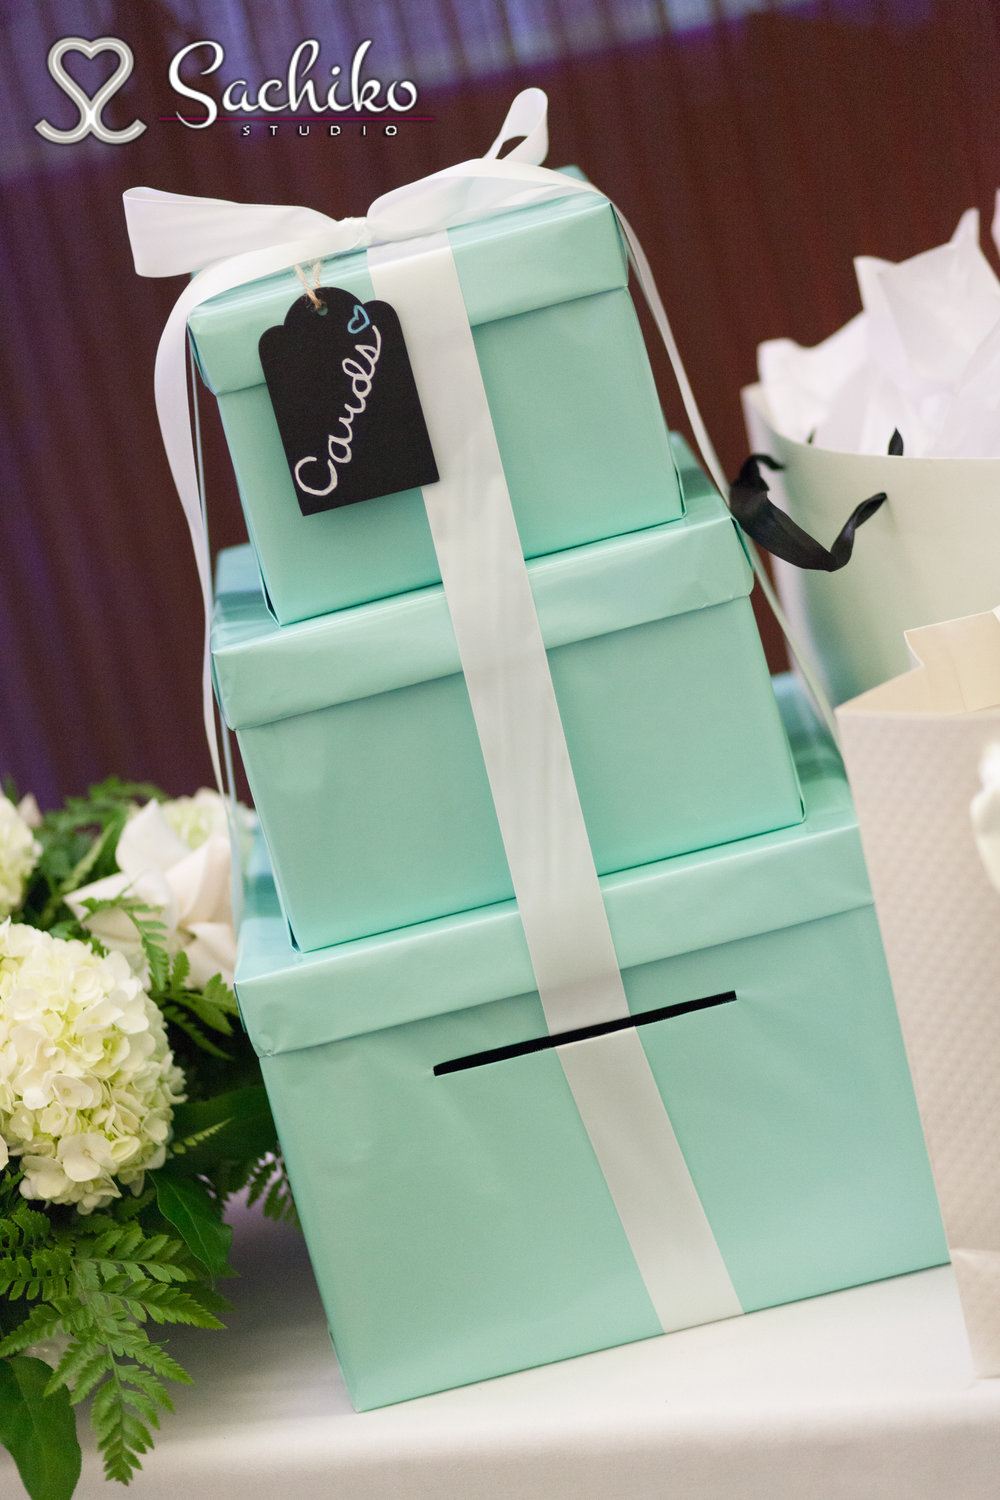 tiffanycardbox